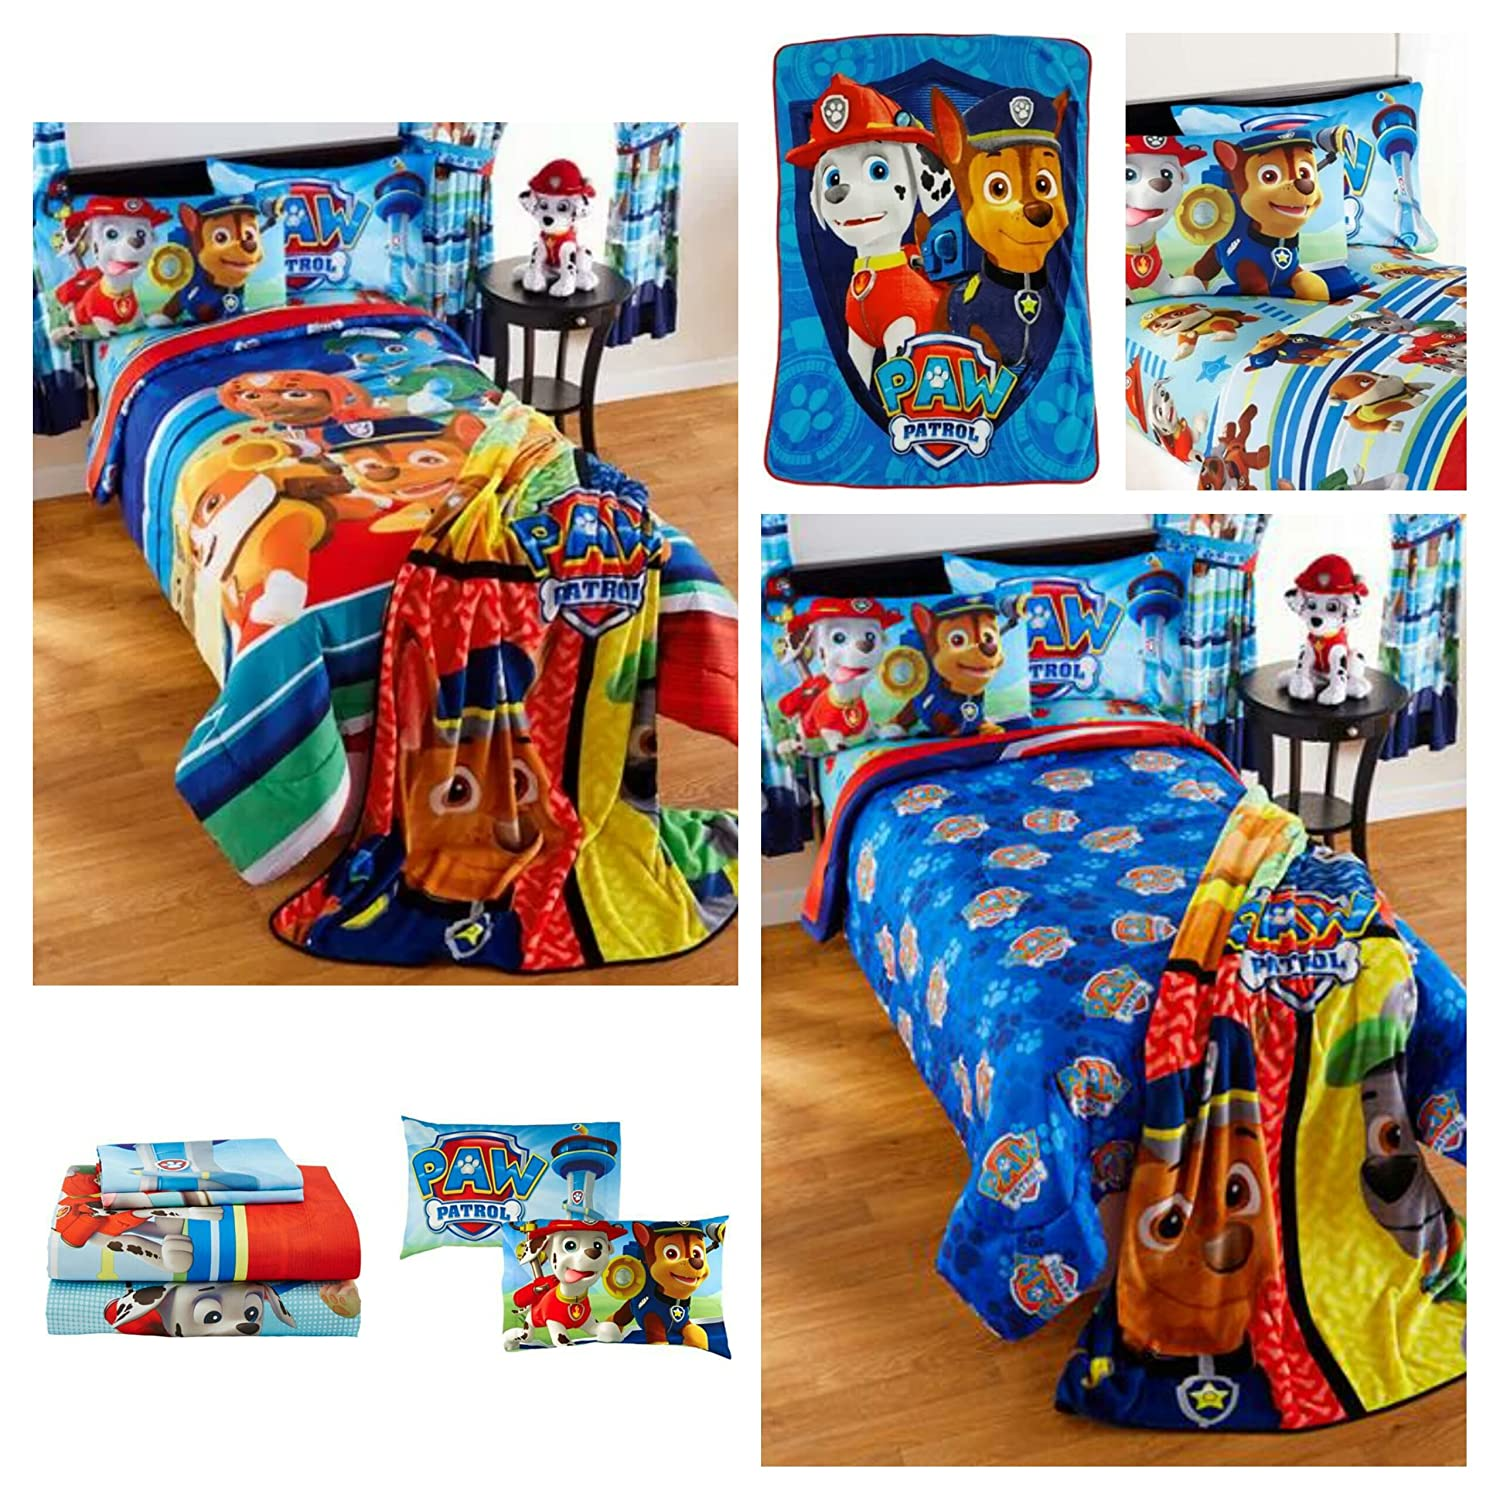 Paw Patrol Kids 5 Piece Bedding Set with Reversible Comforter, Sheets, Pillowcase, and Nap Blanket